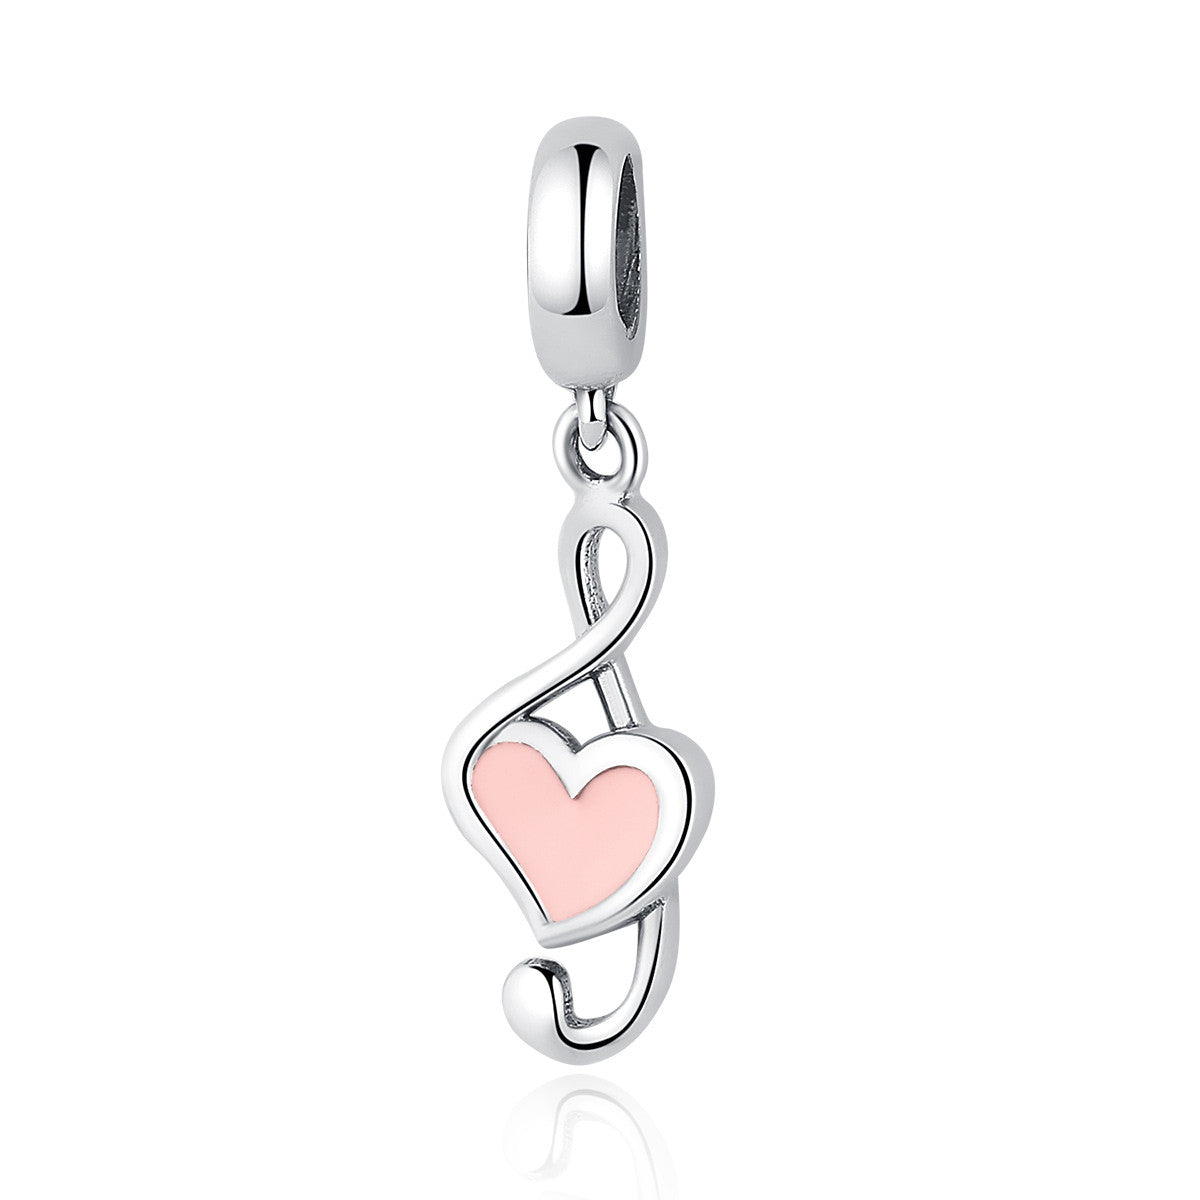 bracelet on com ribbon brand aliexpress heart teamer jewelry item breast charm alibaba silver survivor from pink in accessories crystal cancer bracelets